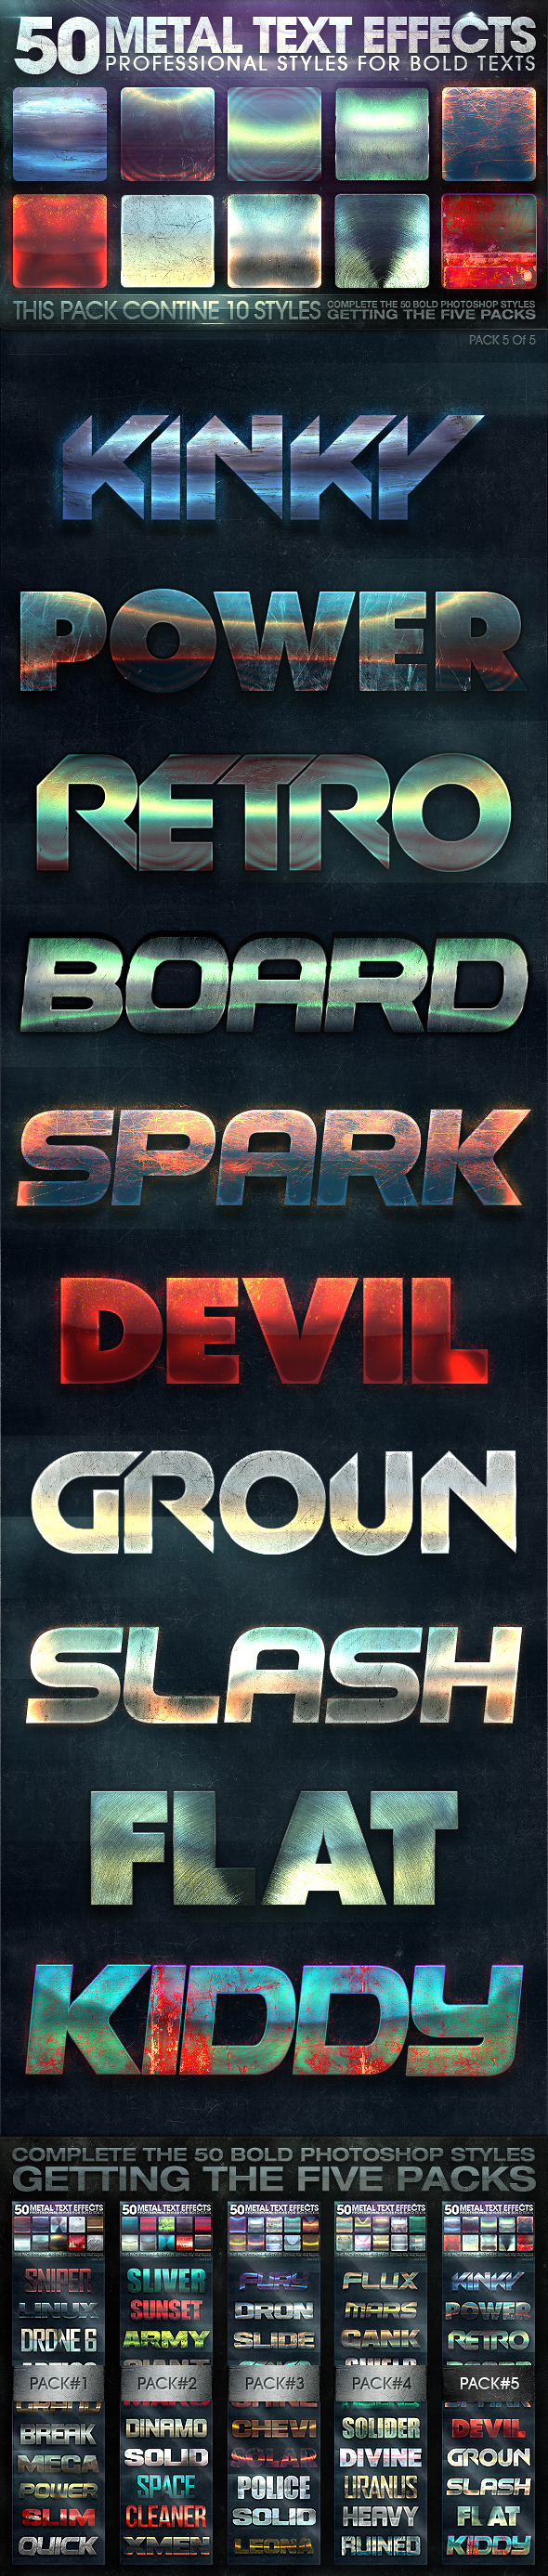 50 Metal Text Effects 5 of 5 - Text Effects Styles